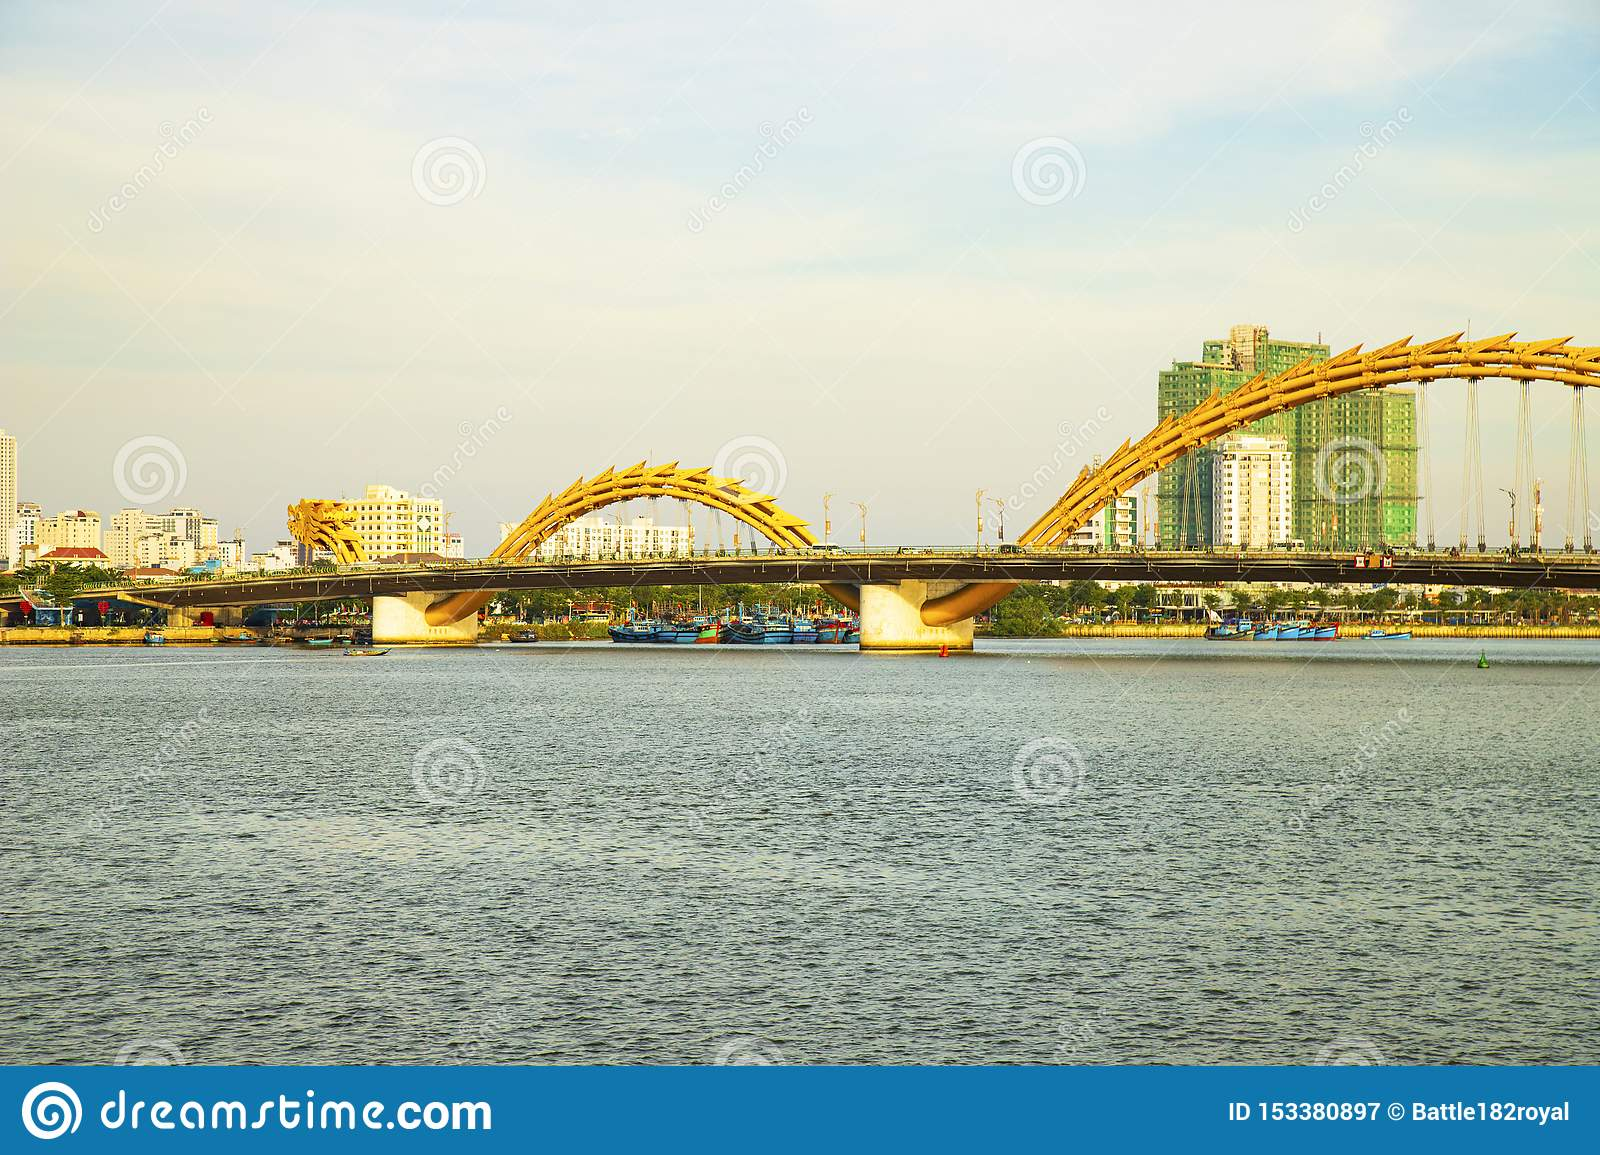 Da Nang, Vietnam - 23. JUNI 2019: Dragon Bridge in Danang, Vietnam